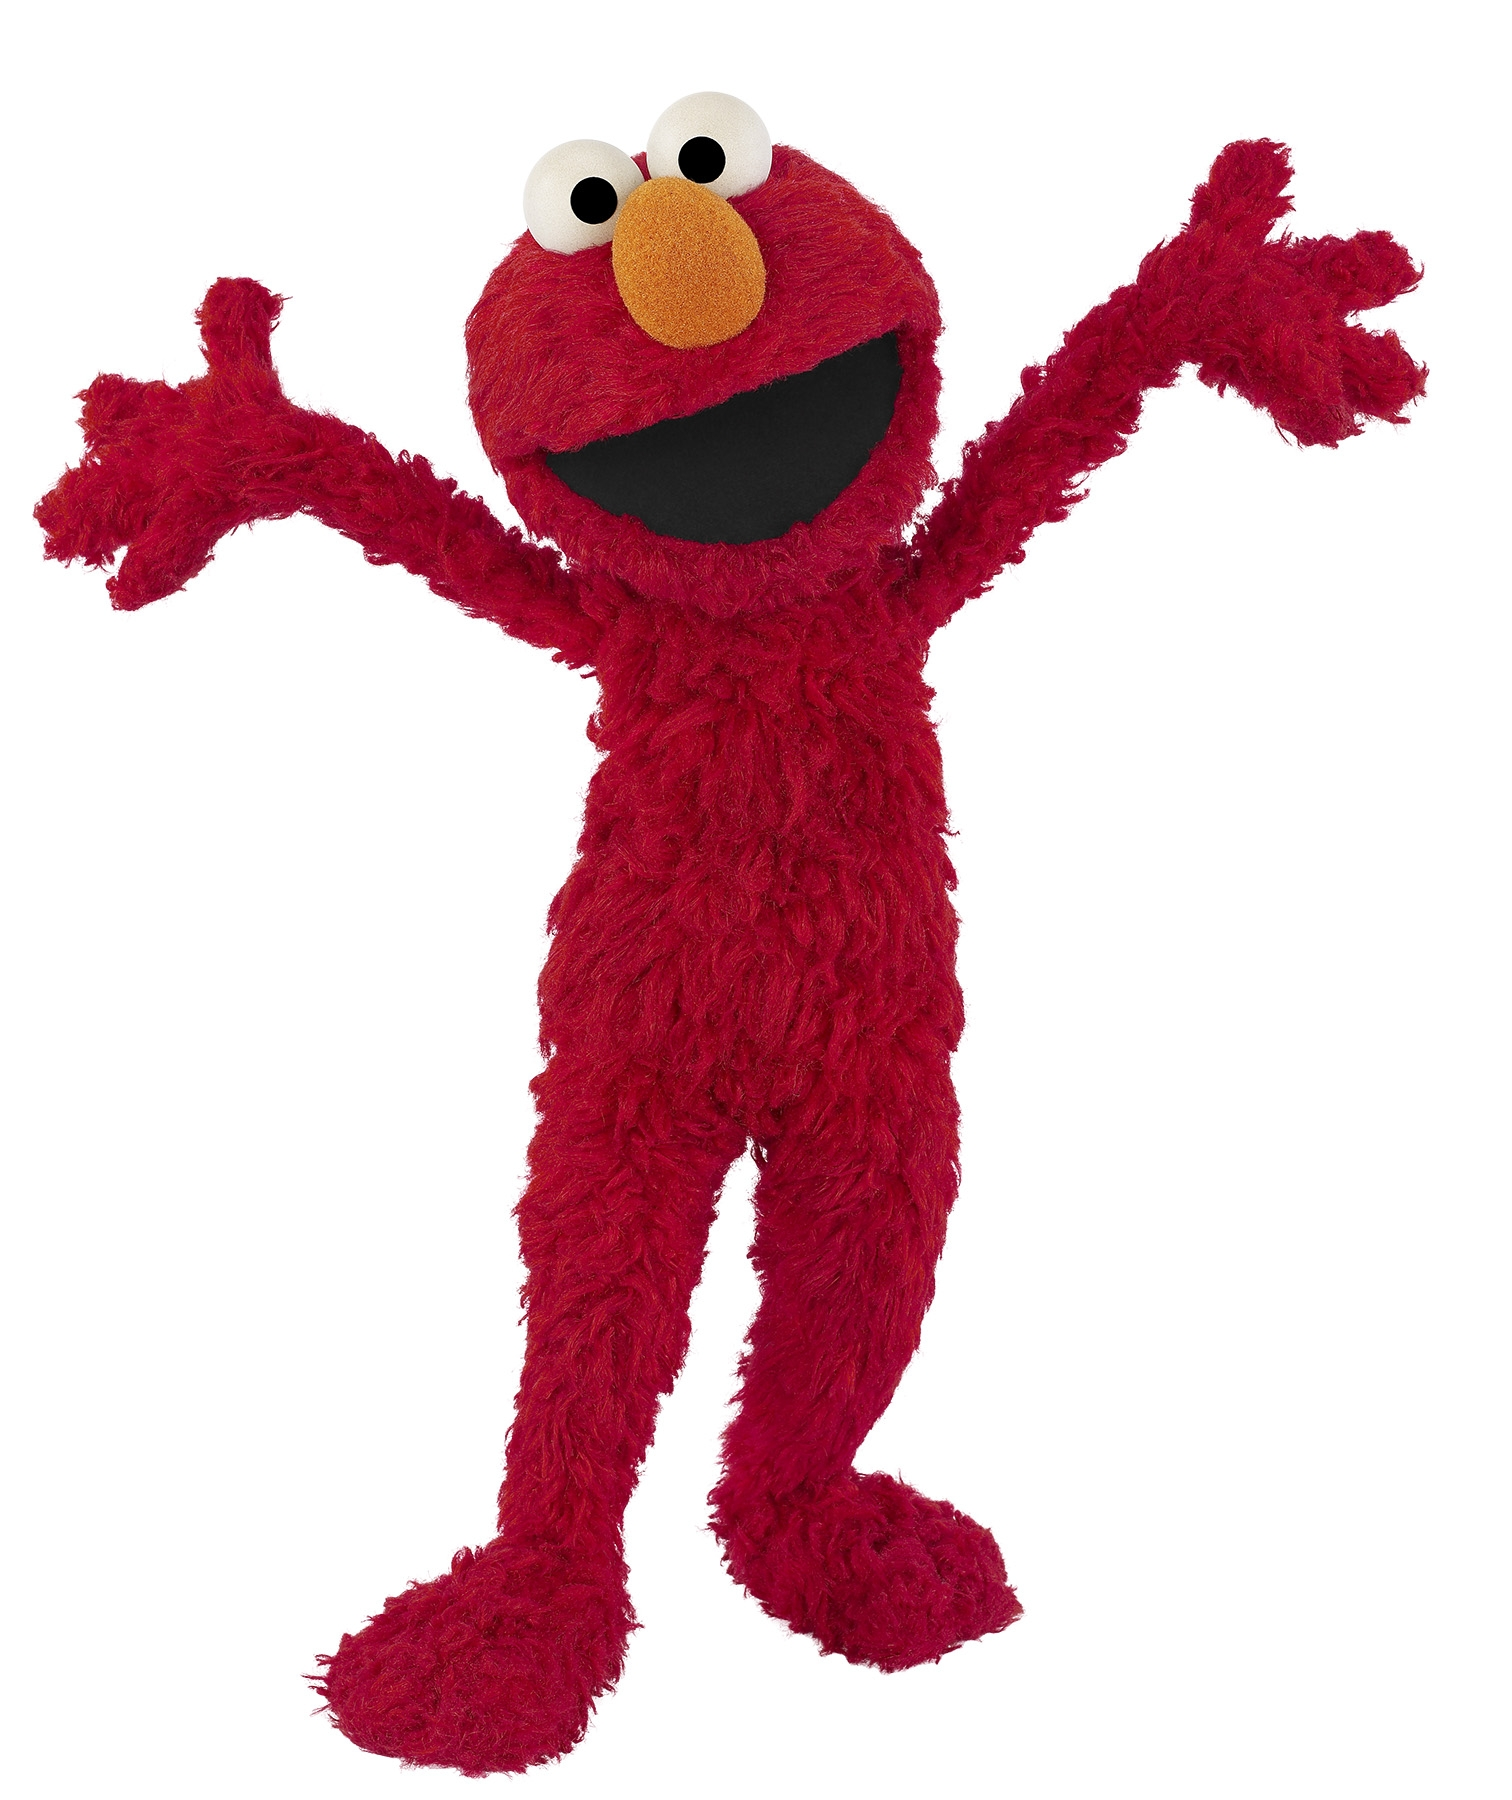 http://talkingwalnut.com/wp-content/uploads/2011/02/Elmo-Arms-open_3-2.jpg